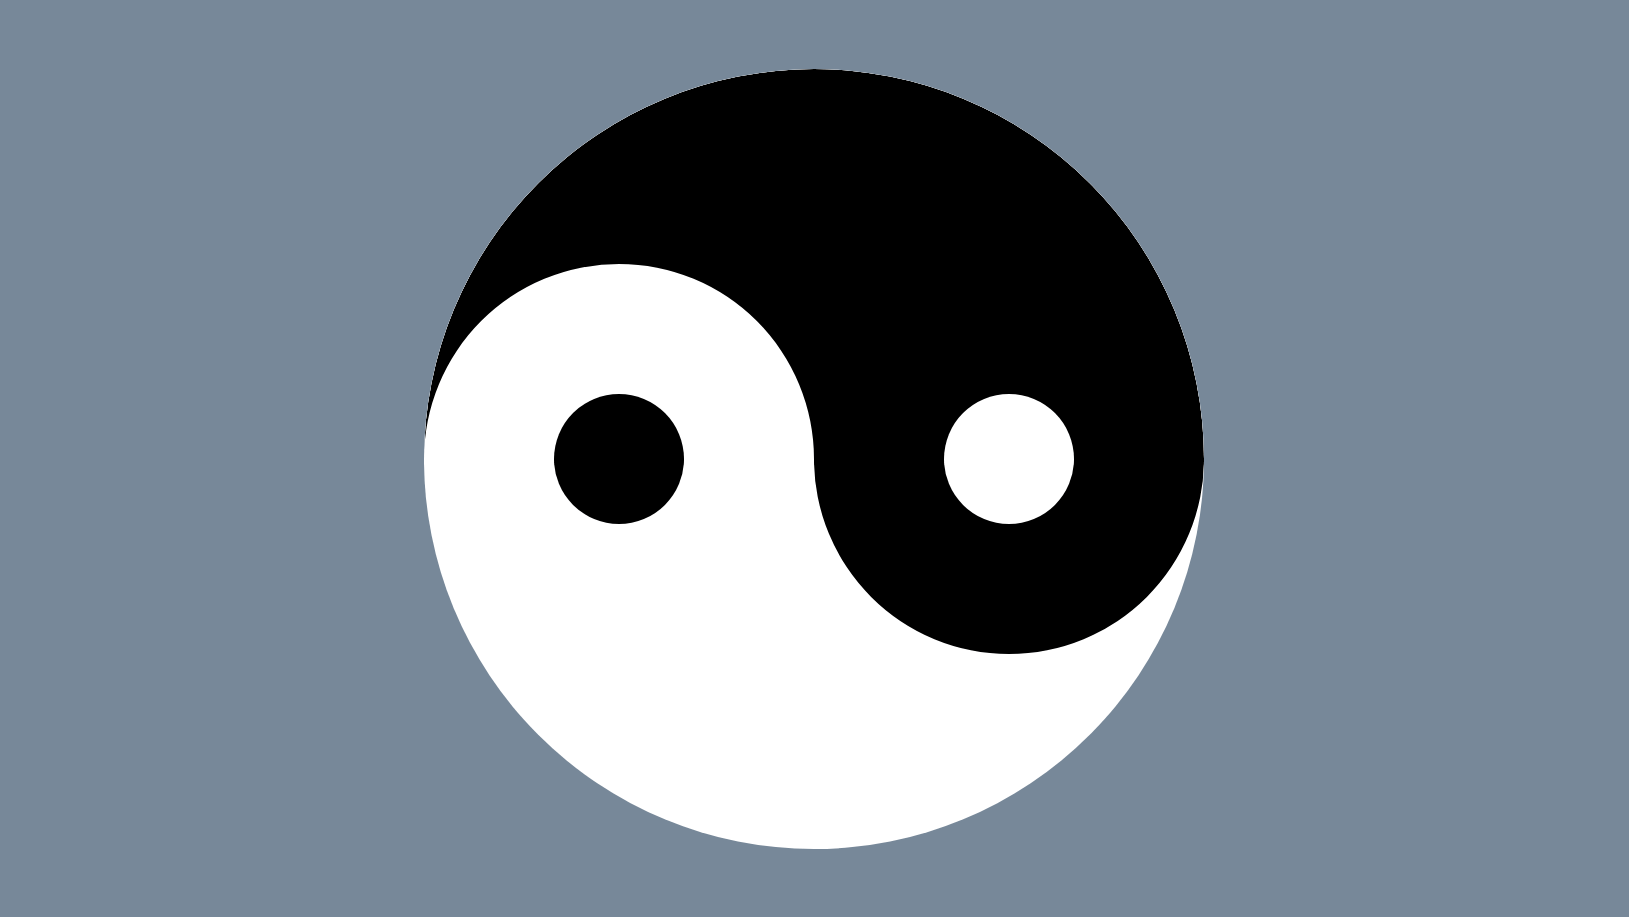 Screenshot of the static yin and yang shape.